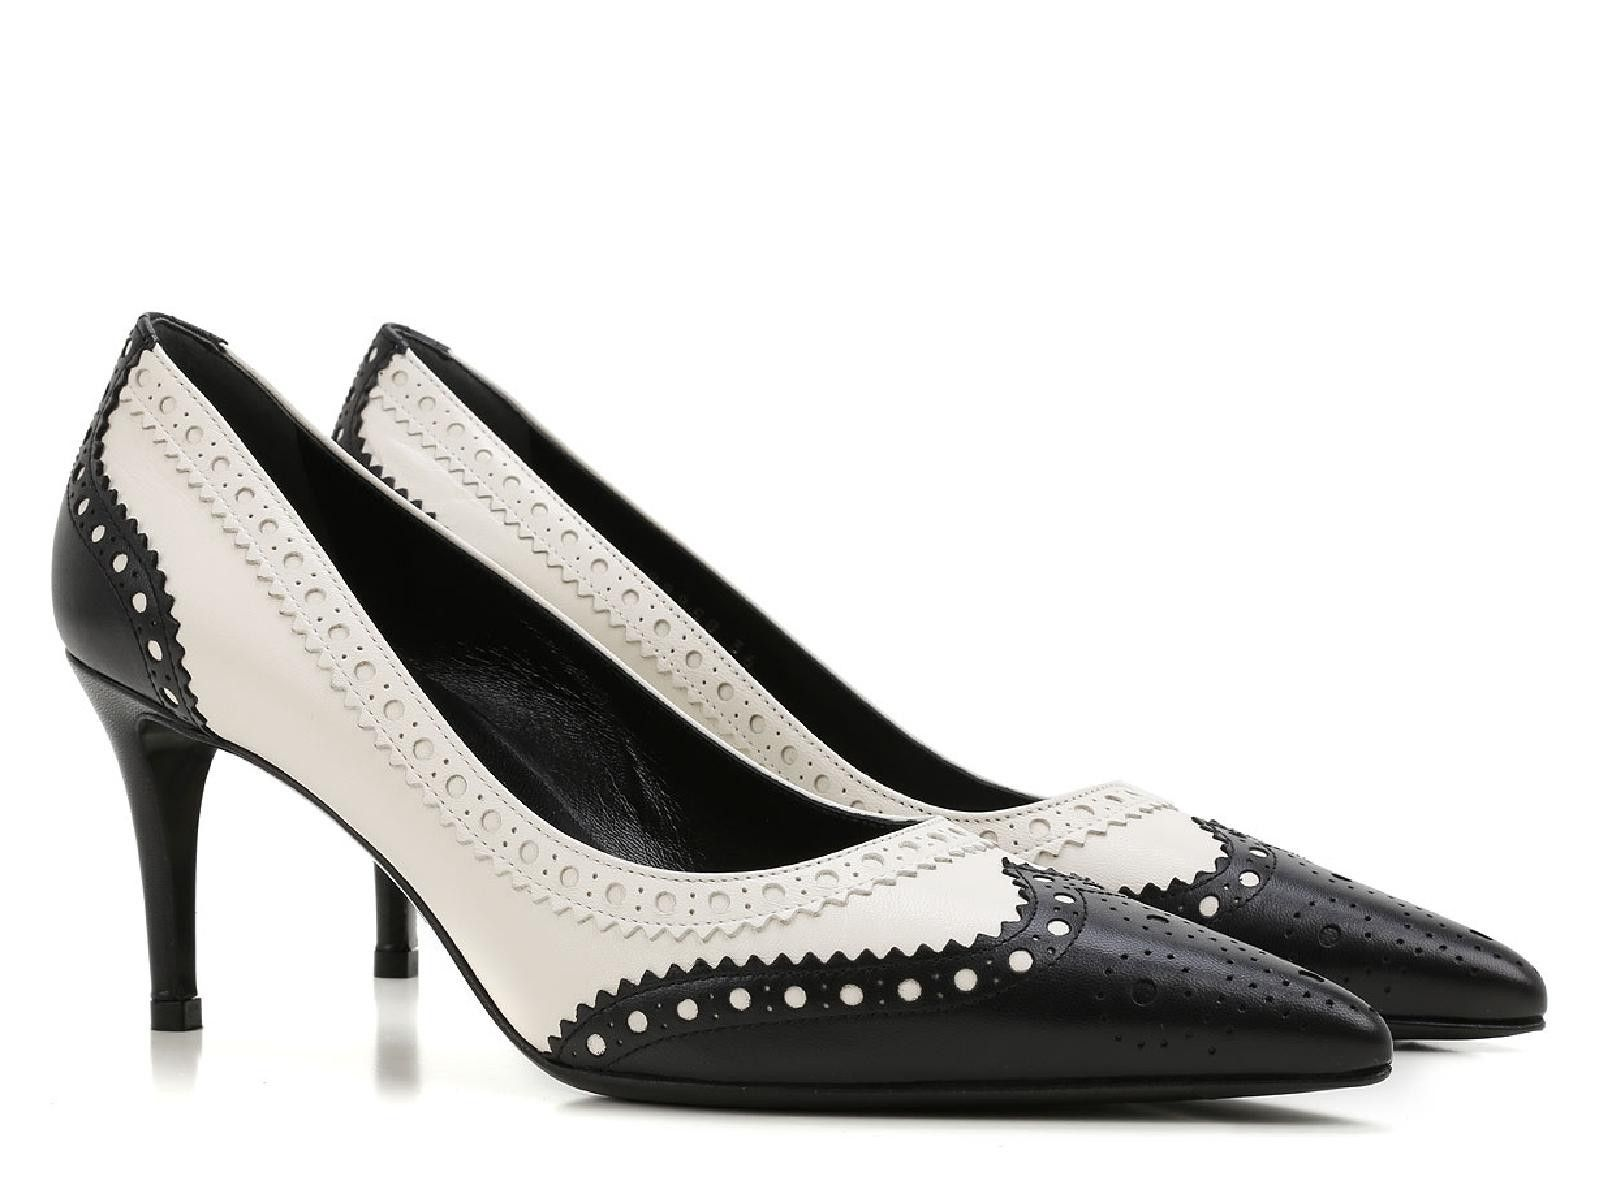 Gucci black/white leather brogues